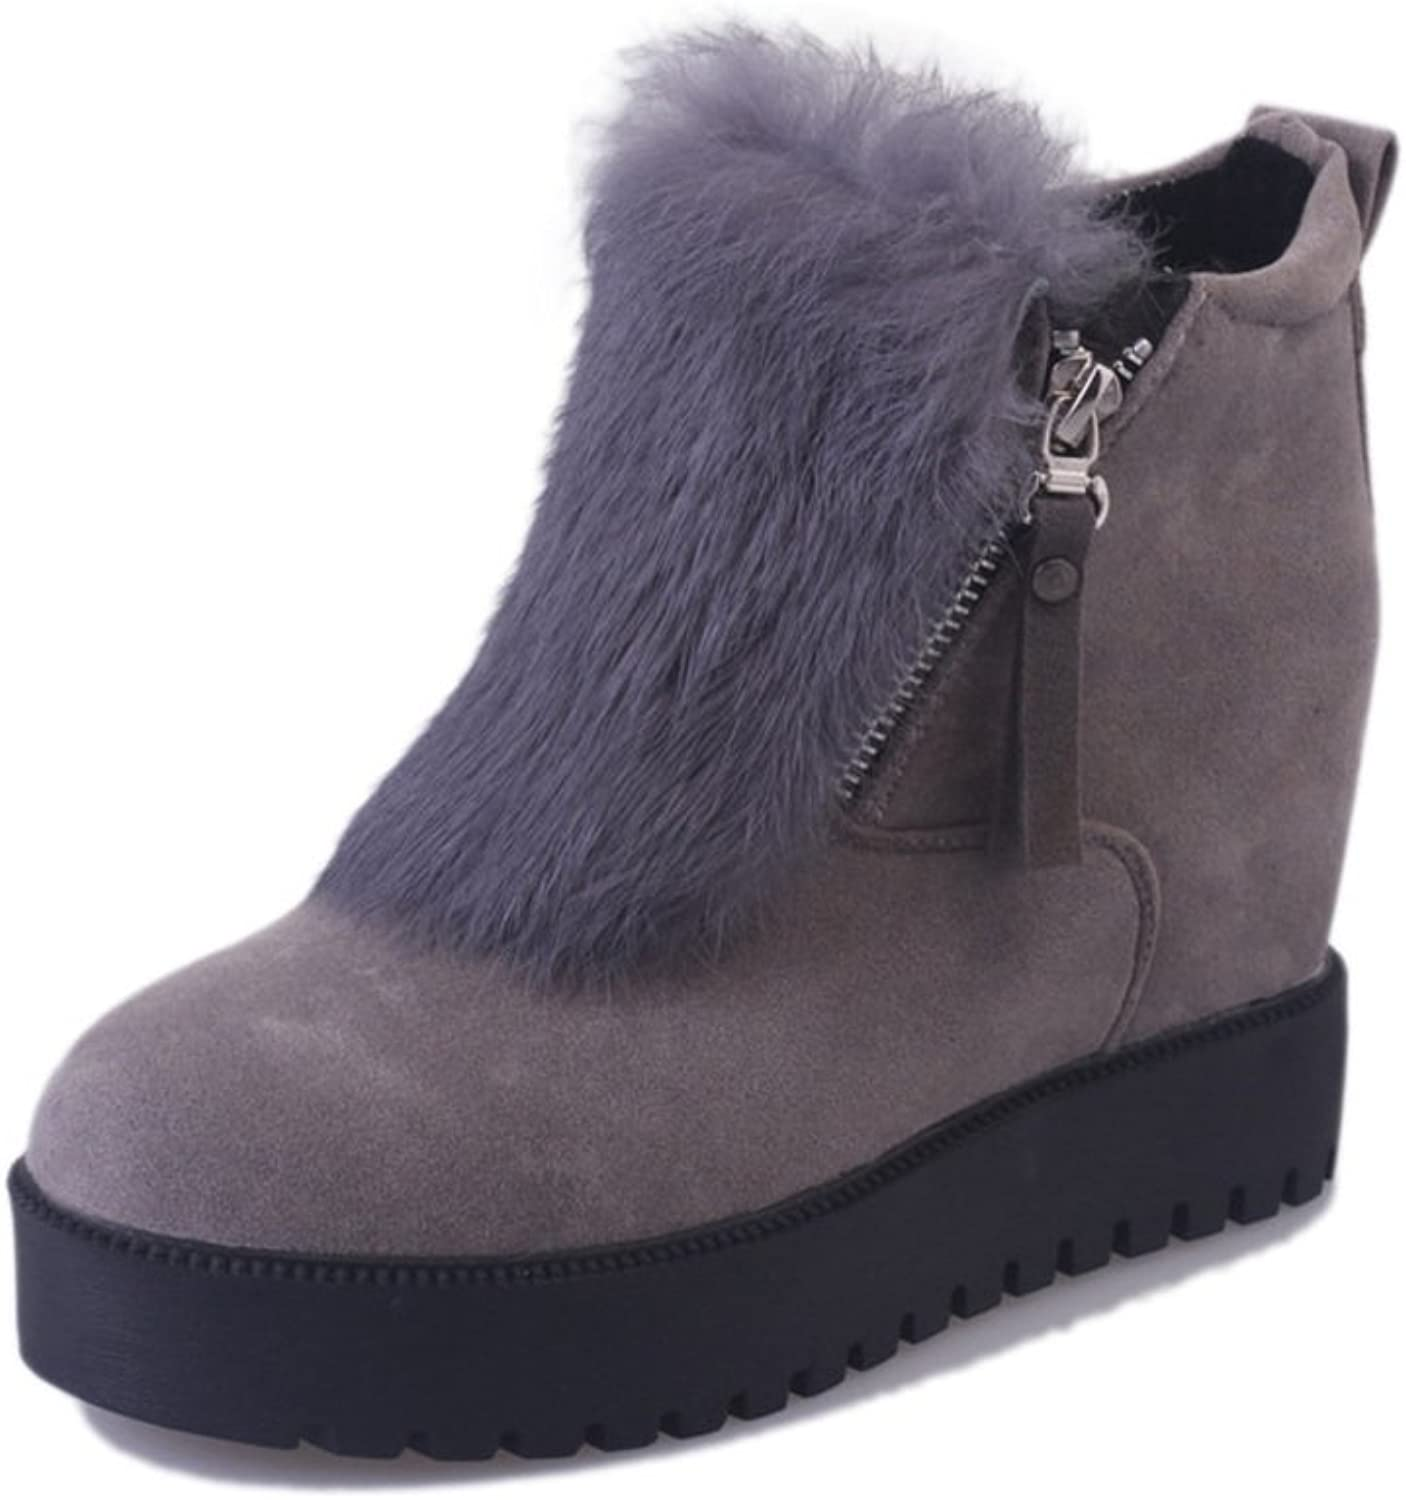 Huhuj Korean winter and cashmere women's shoes Thick-soled boots warm non-slip shoes High boot for a short tube student